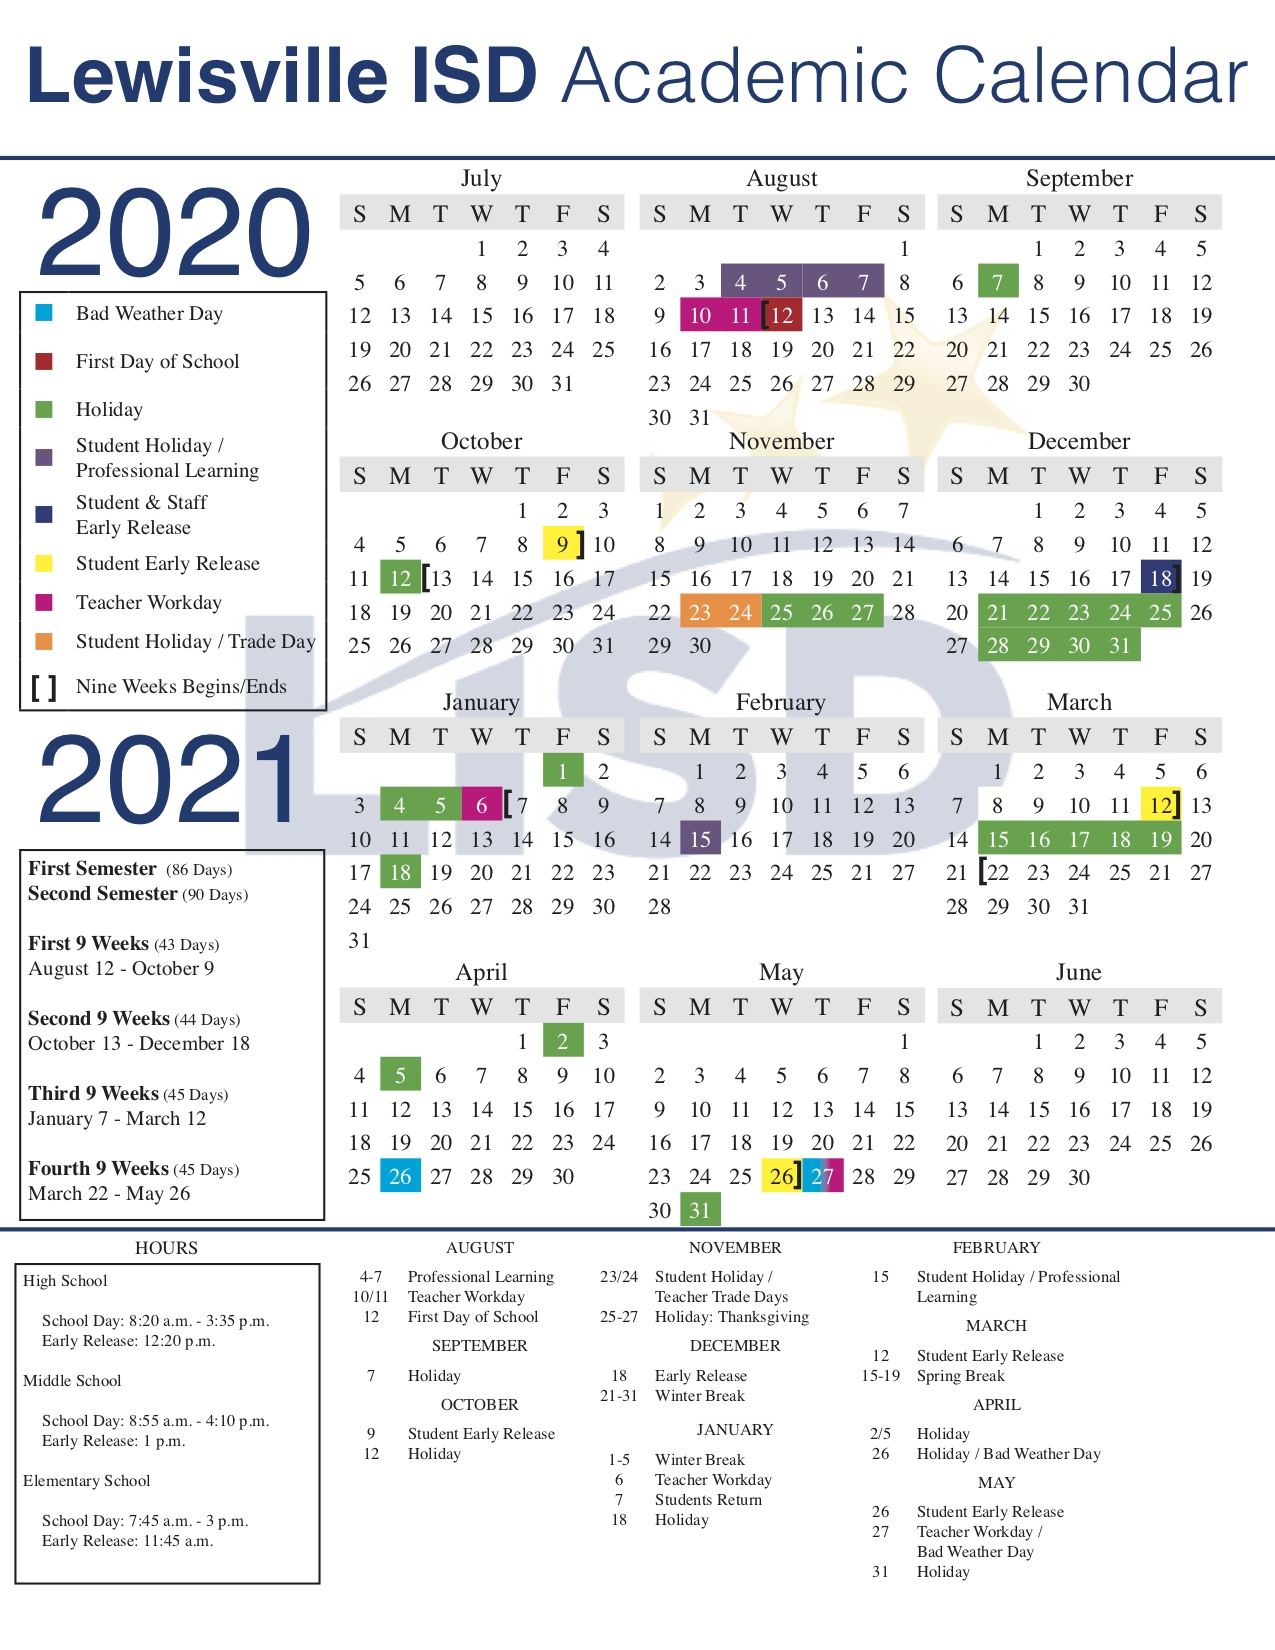 Lisd Approves 2020-21 Academic Calendar with regard to Stephen F Austin 2020-2021 Calendar